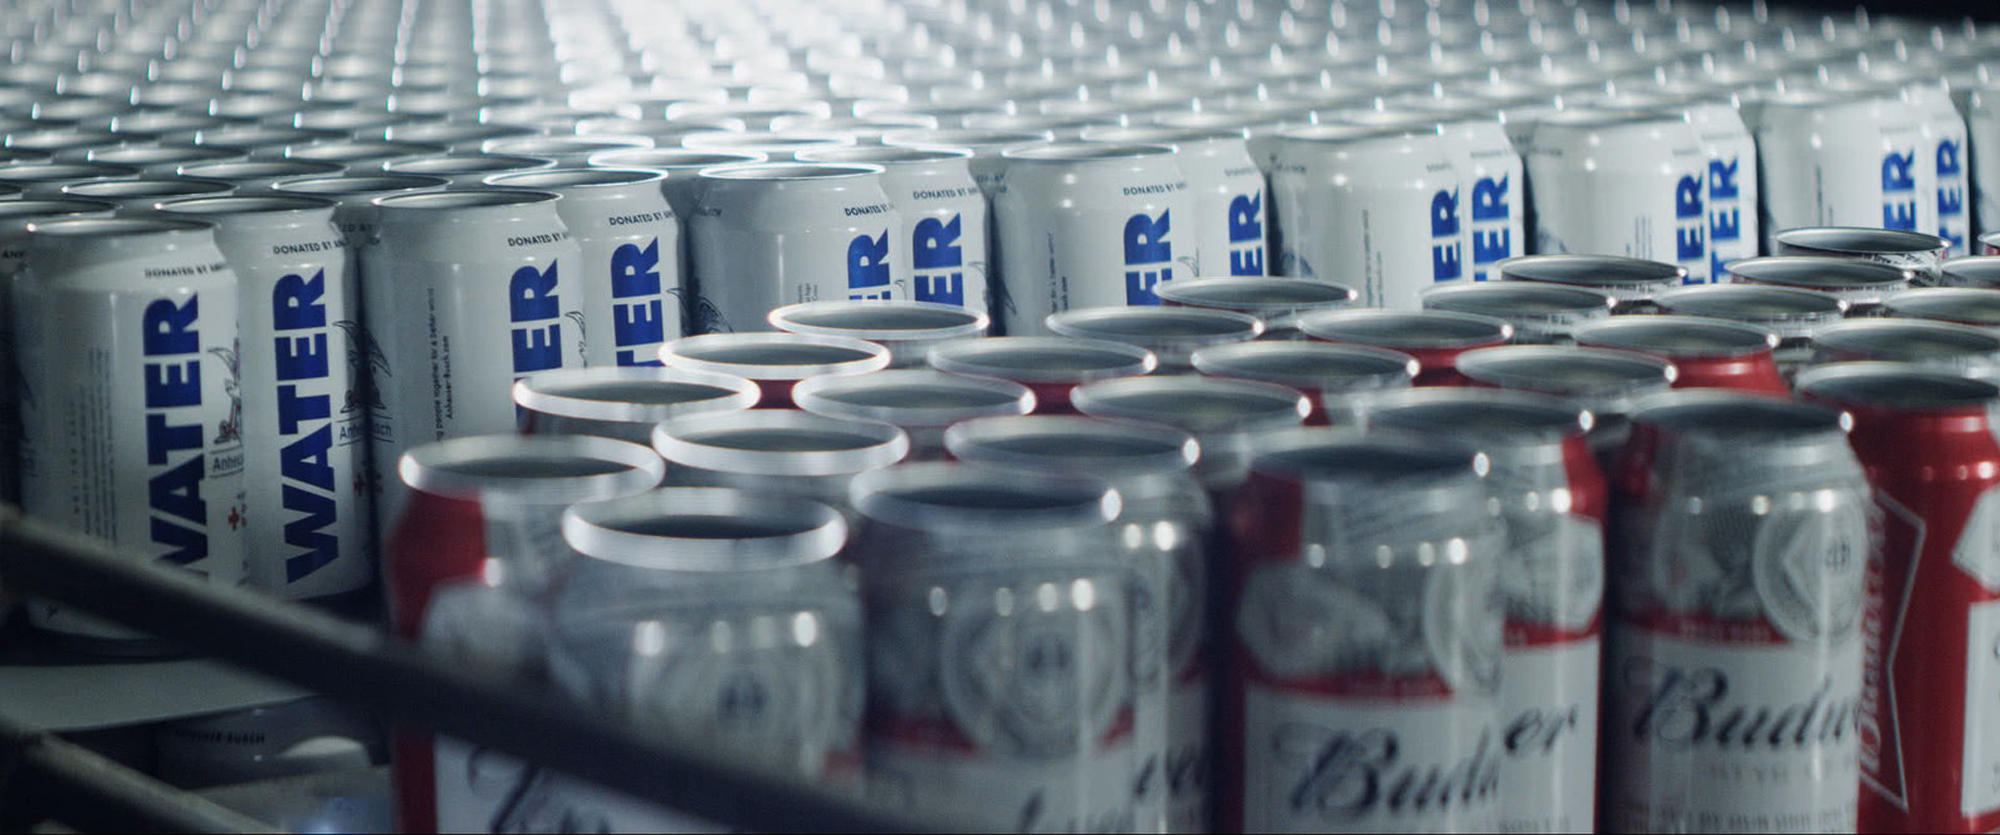 This photo provided by Budweiser shows a scene from the company's Super Bowl spot. It was the most effective commercial in which one of the company's factories repurposed their cans, filled them with water and sent them to those in need of disaster relief.(Budweiser via AP)